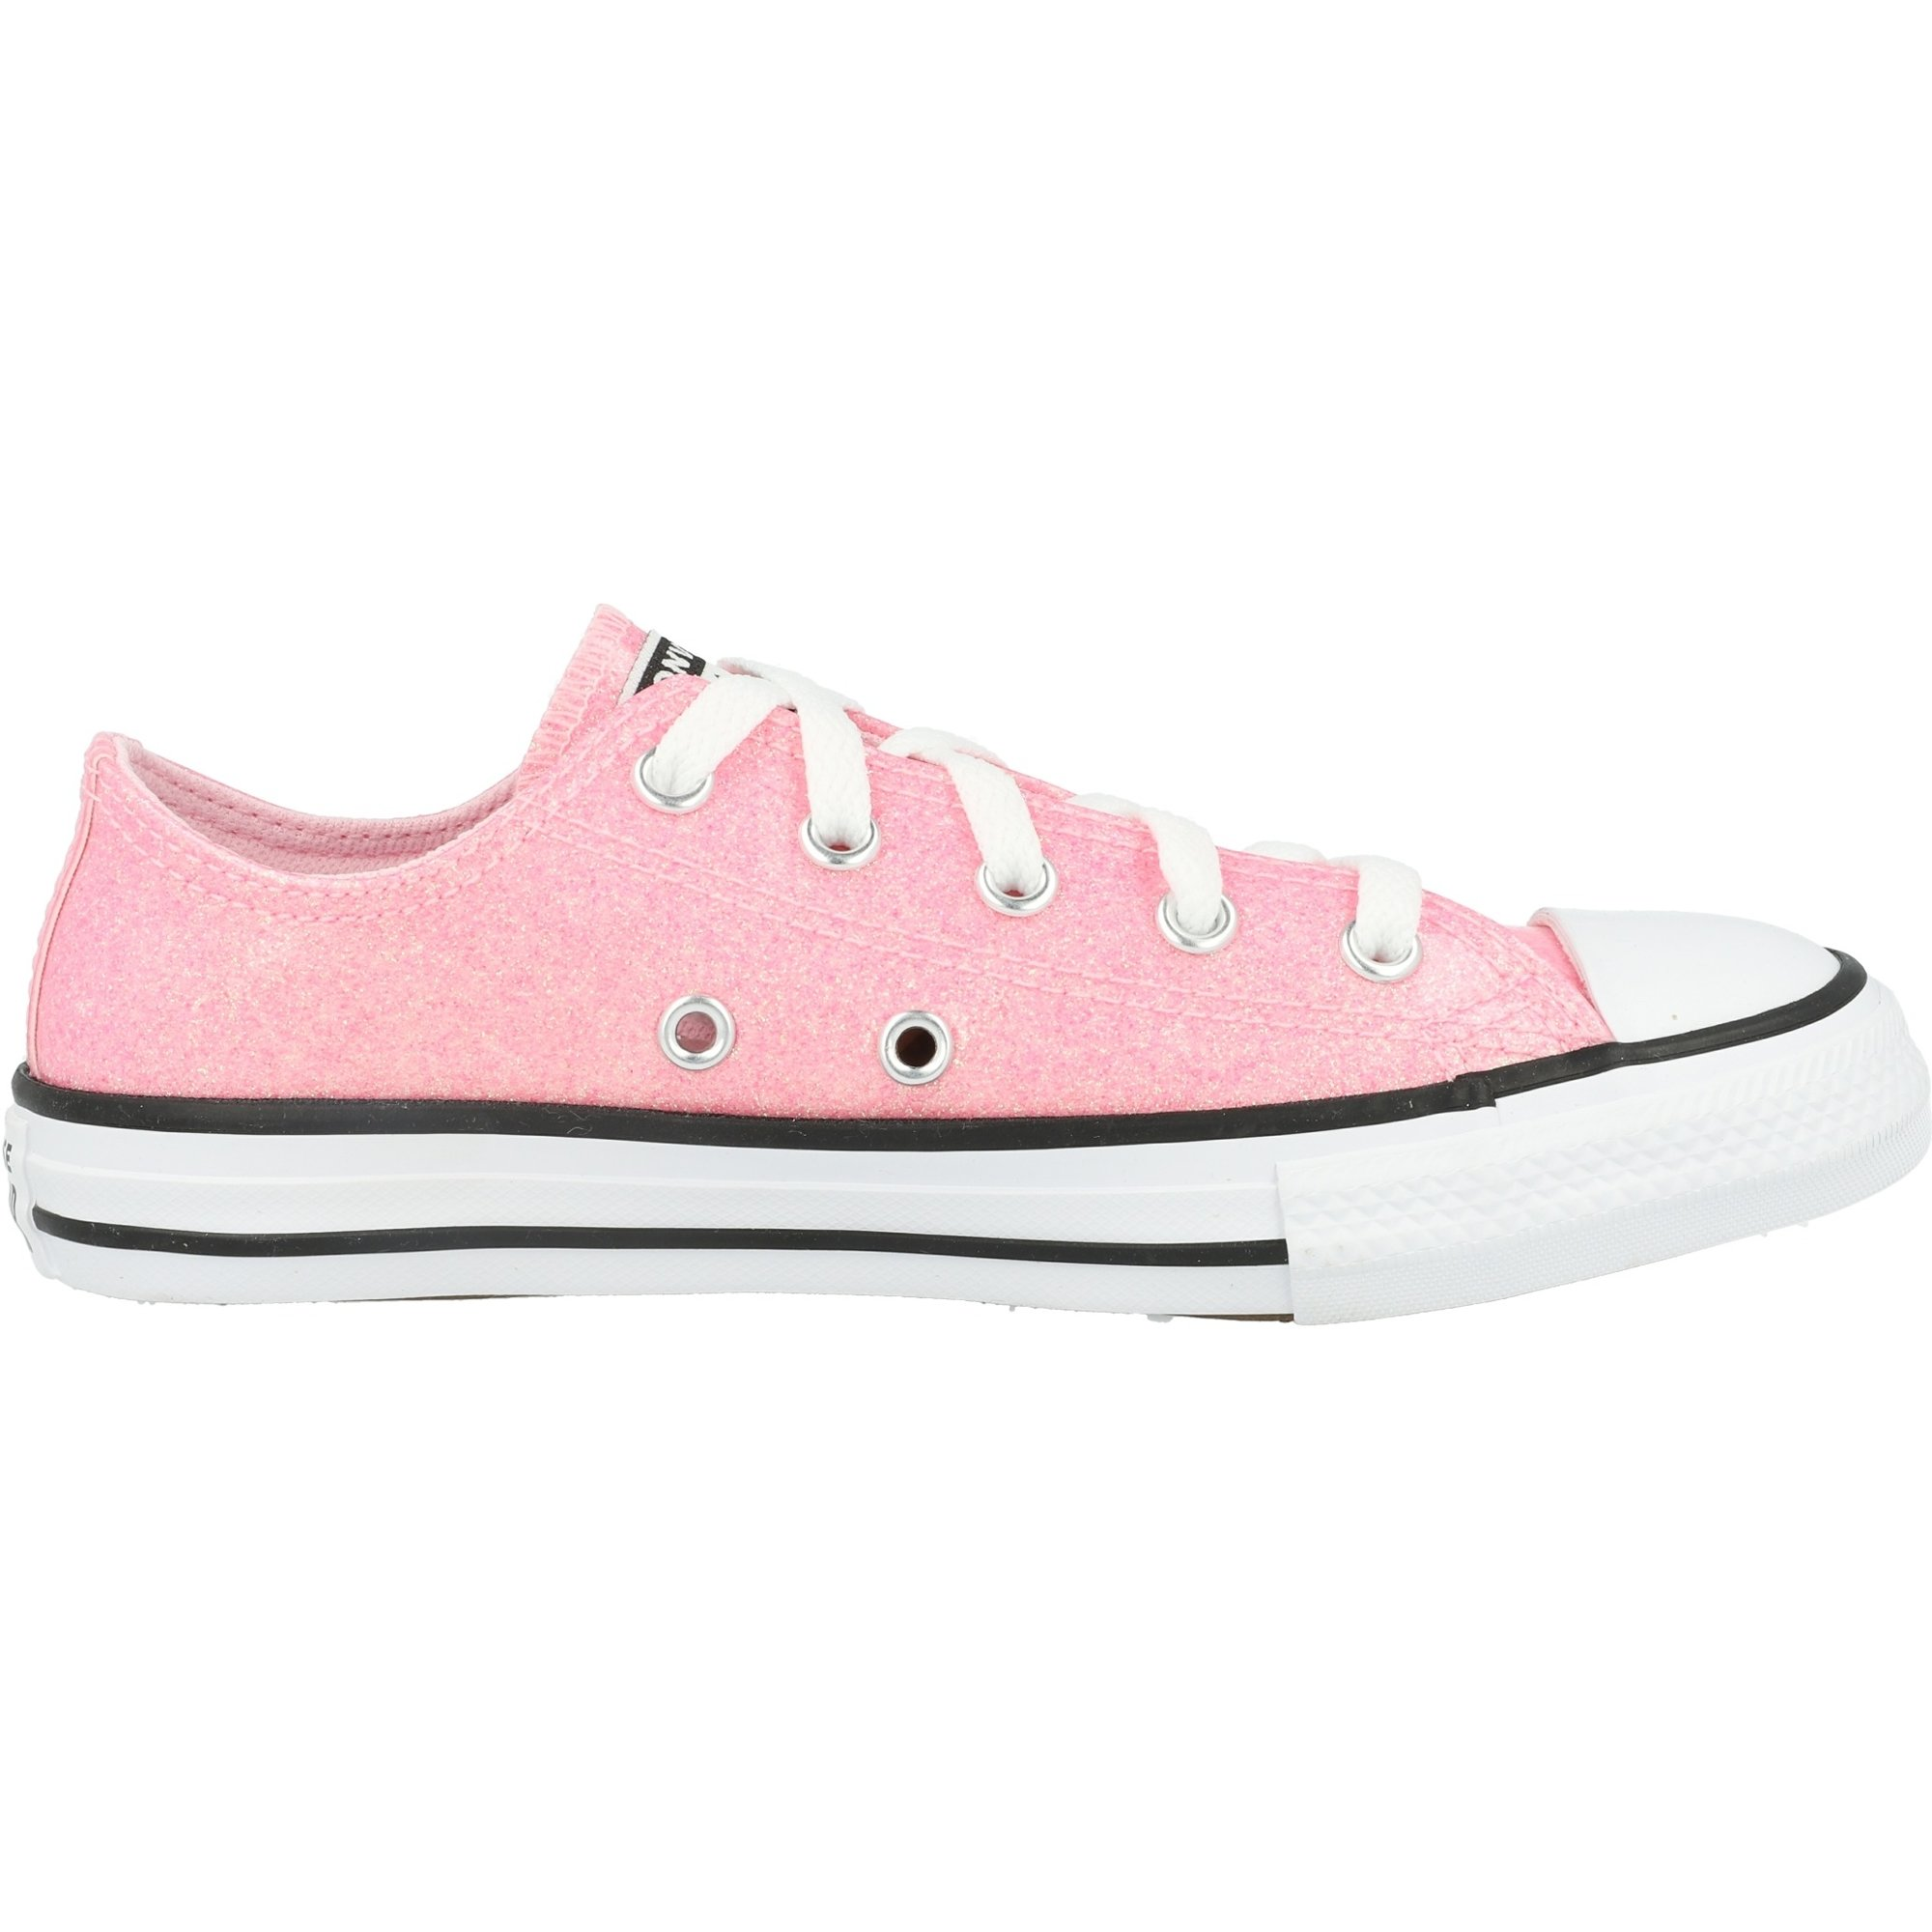 Converse Chuck Taylor All Star Ox Coated Glitter Cherry Blossom/Black Synthetic